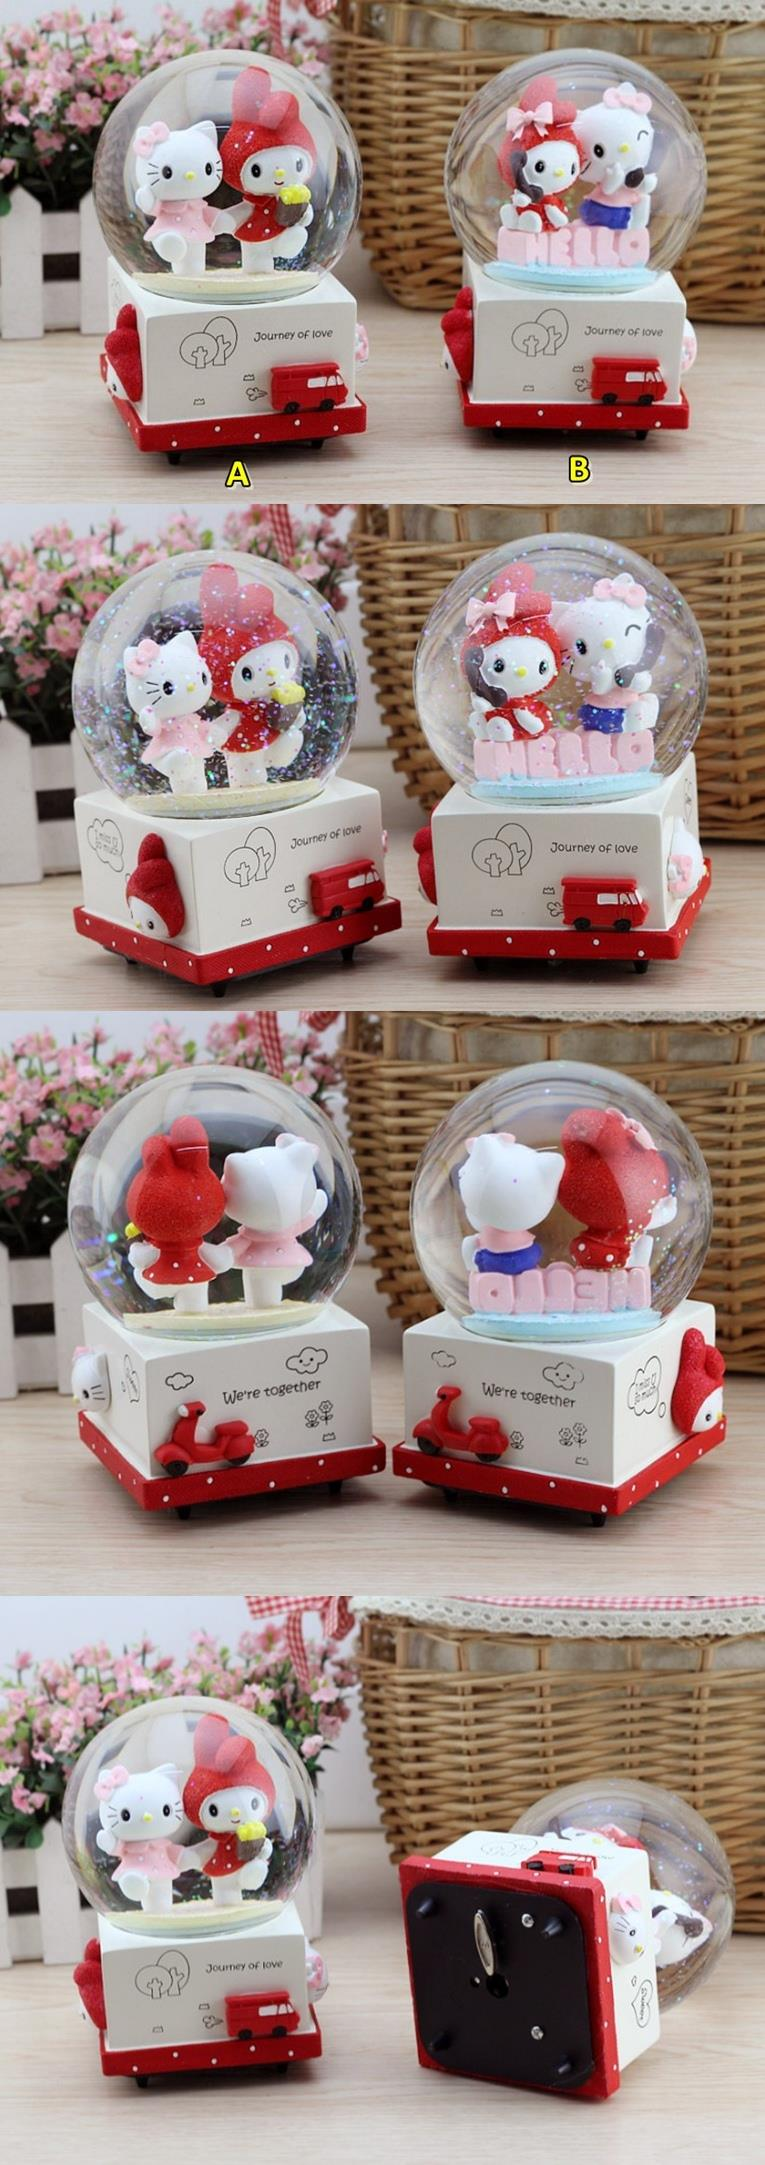 KITTY & MELODY MUSICAL SNOW GLOBE - L